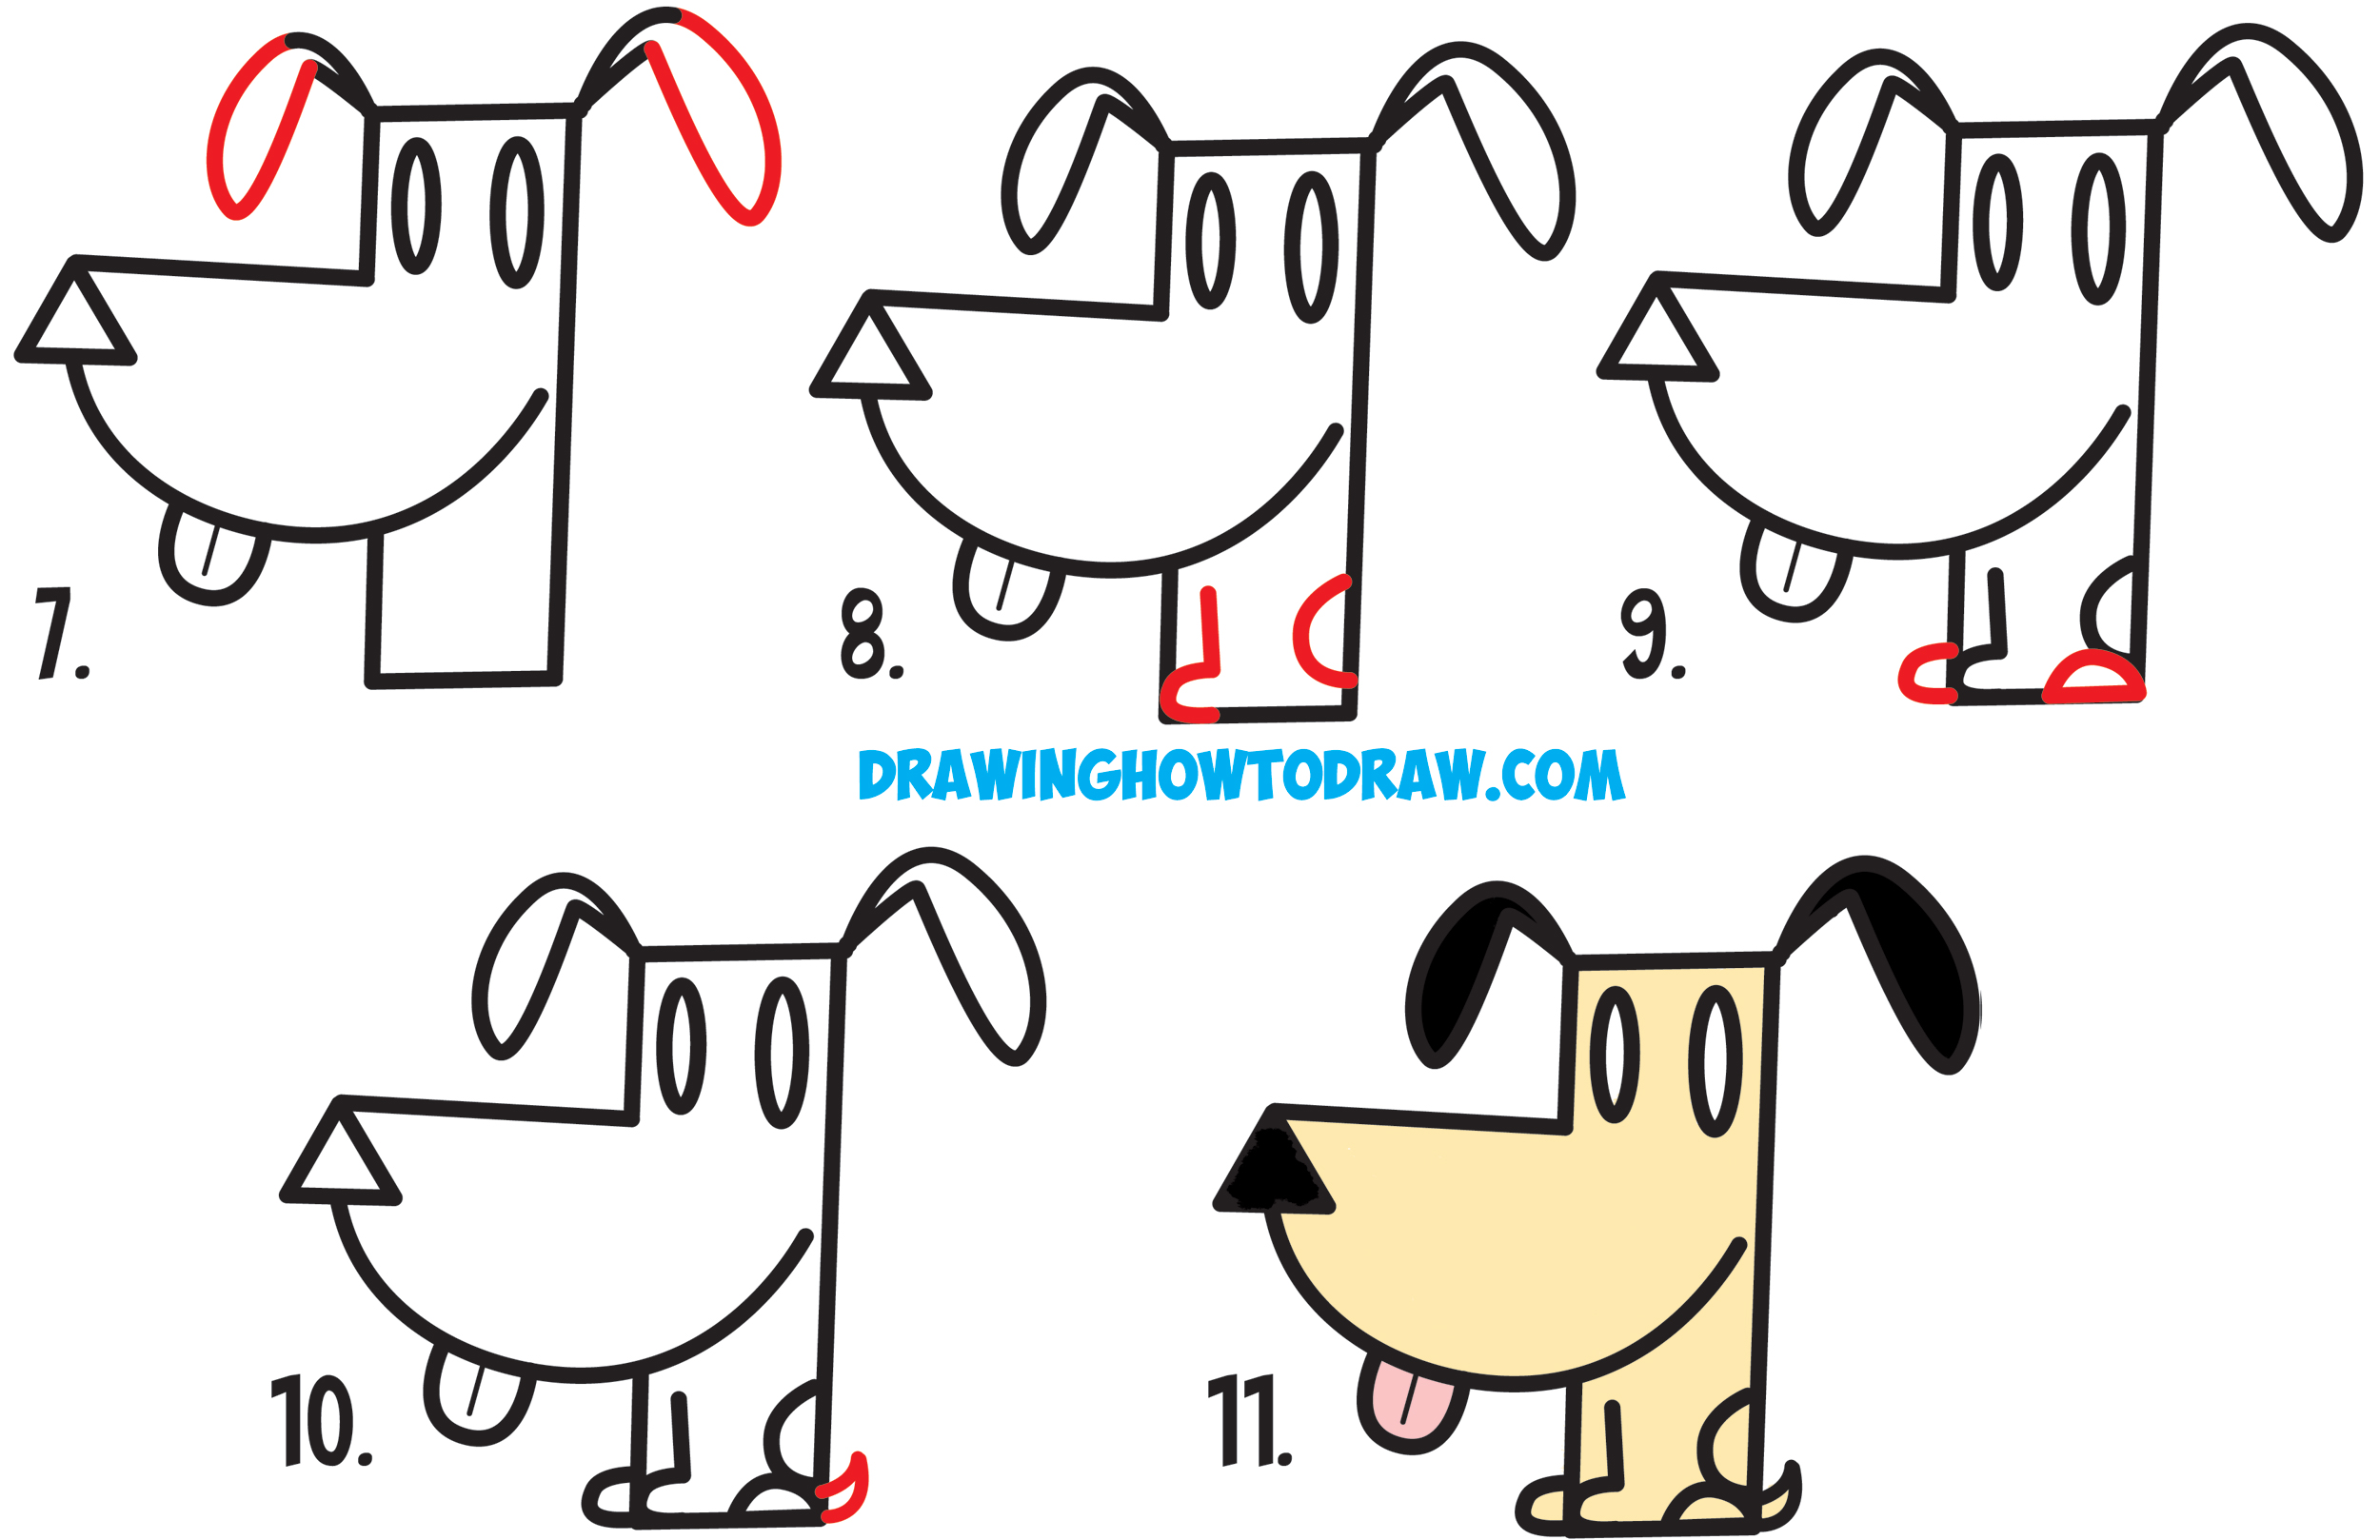 How To Draw A Cartoon Dog From An Arrow Shape Easy Step By Step Drawing Tutorial For Kids How To Draw Step By Step Drawing Tutorials